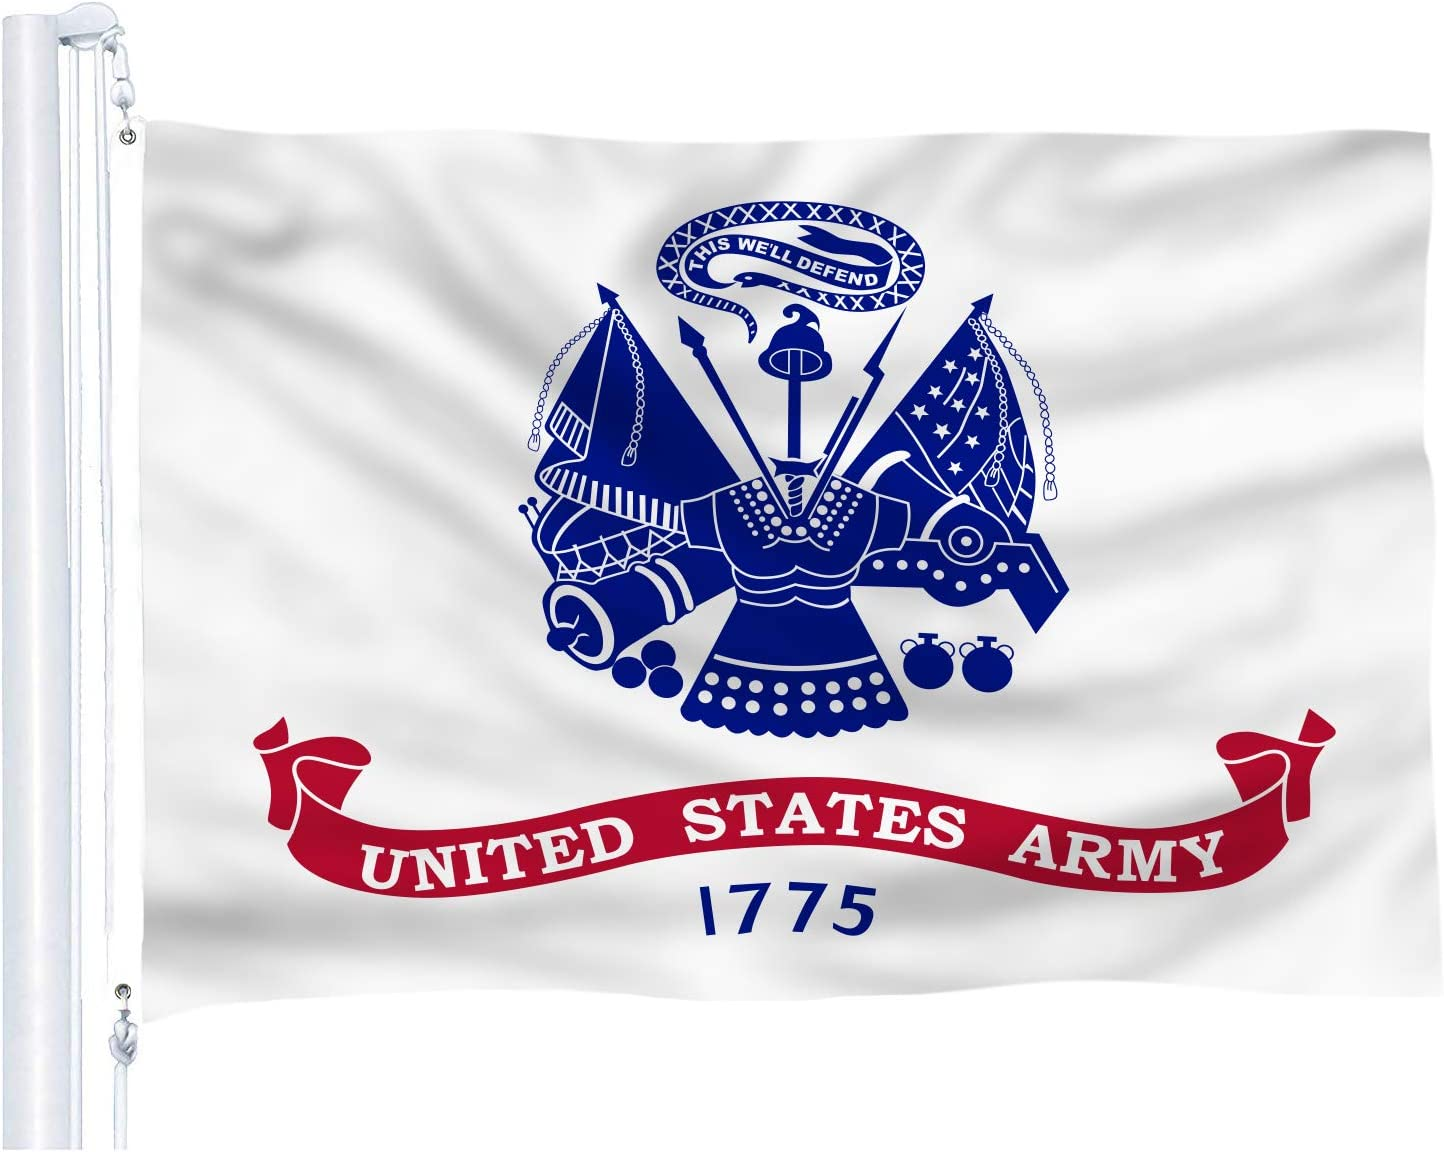 DFLIVE US Army Gold Crest Flag 3x5 ft Printed Polyester Fly United States Military Flag Banner with Brass Grommets